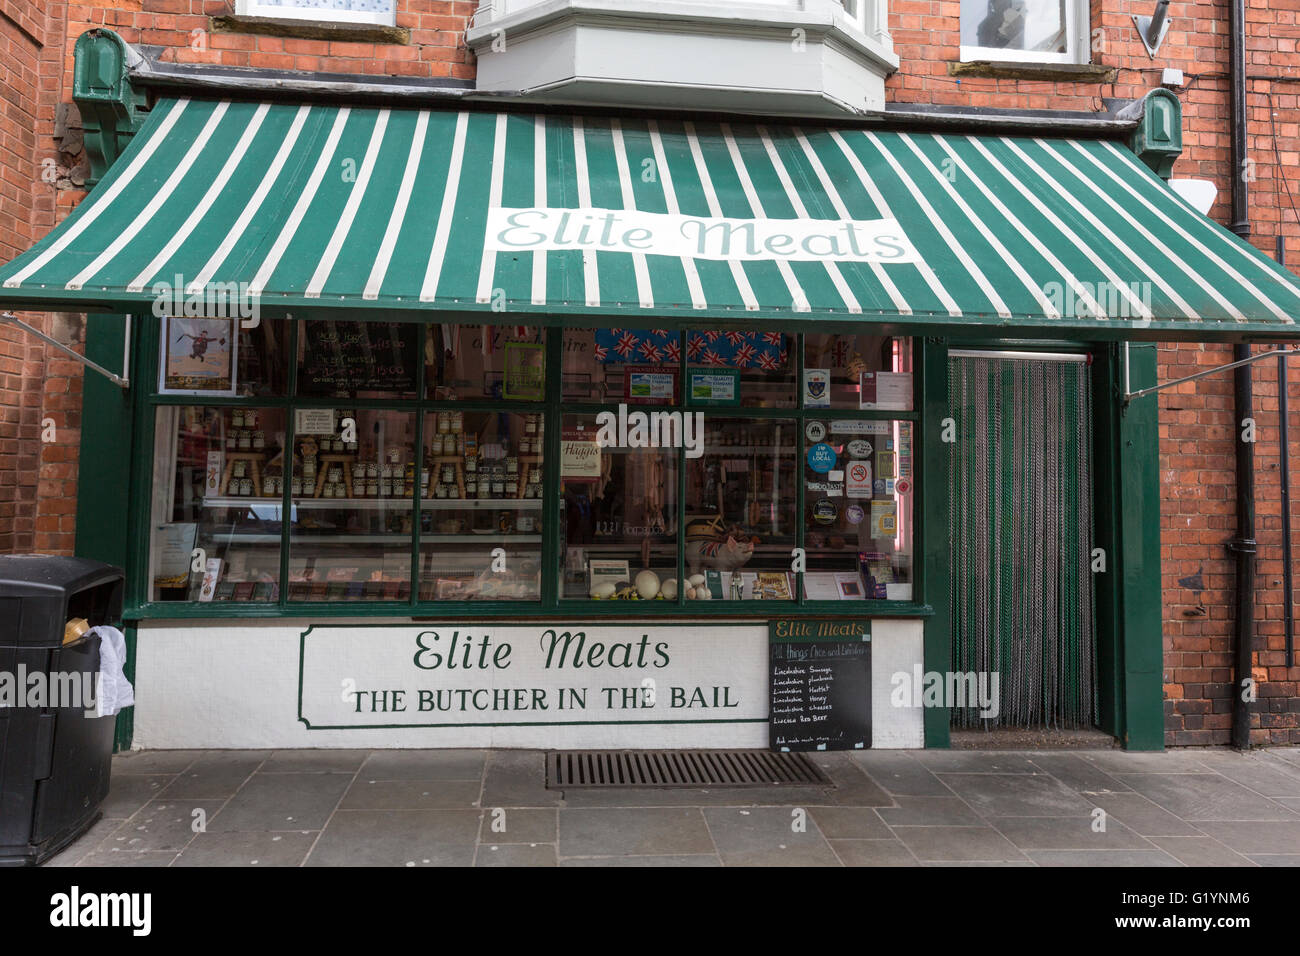 Elite Meats, The Butcher in the Bail shop, Bailgate, Lincoln, Lincolnshire, England, UK - Stock Image